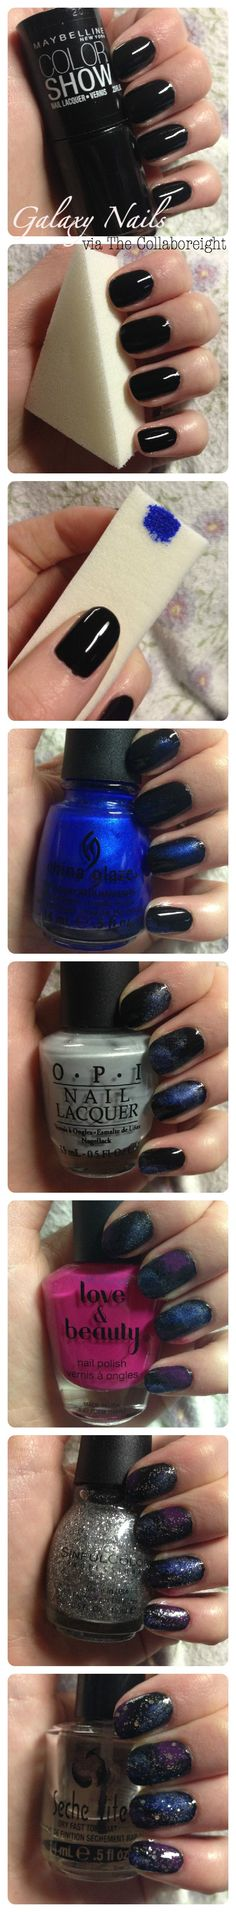 Galaxy Nails - this seems easy enough! I have all the colors too but we'll see how it goes....